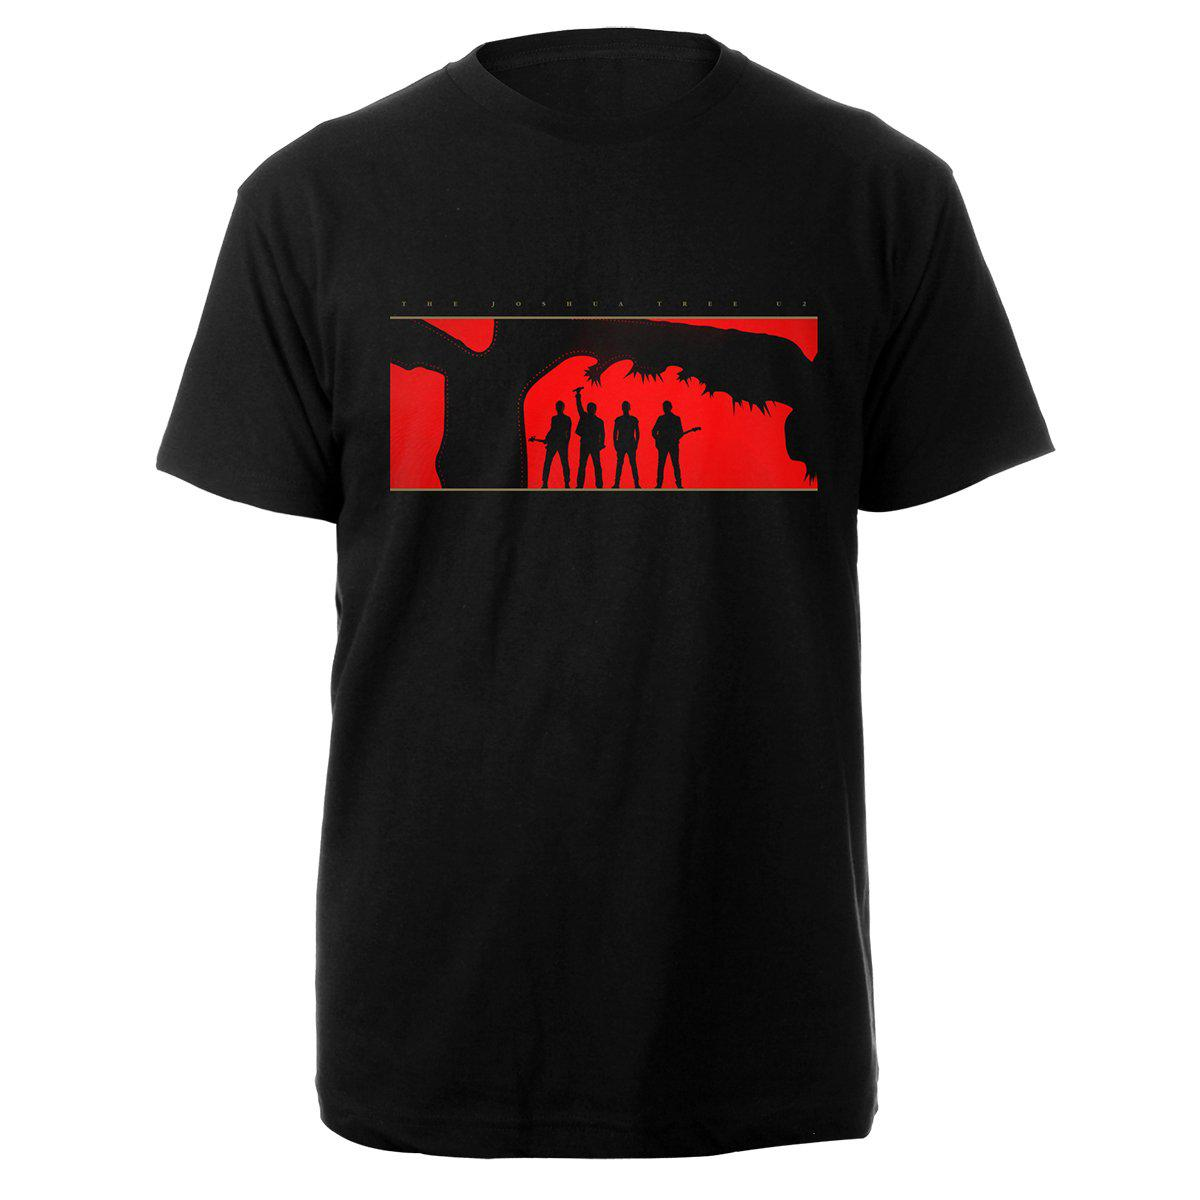 The Joshua Tree 2019 Stage/Dates T-Shirt